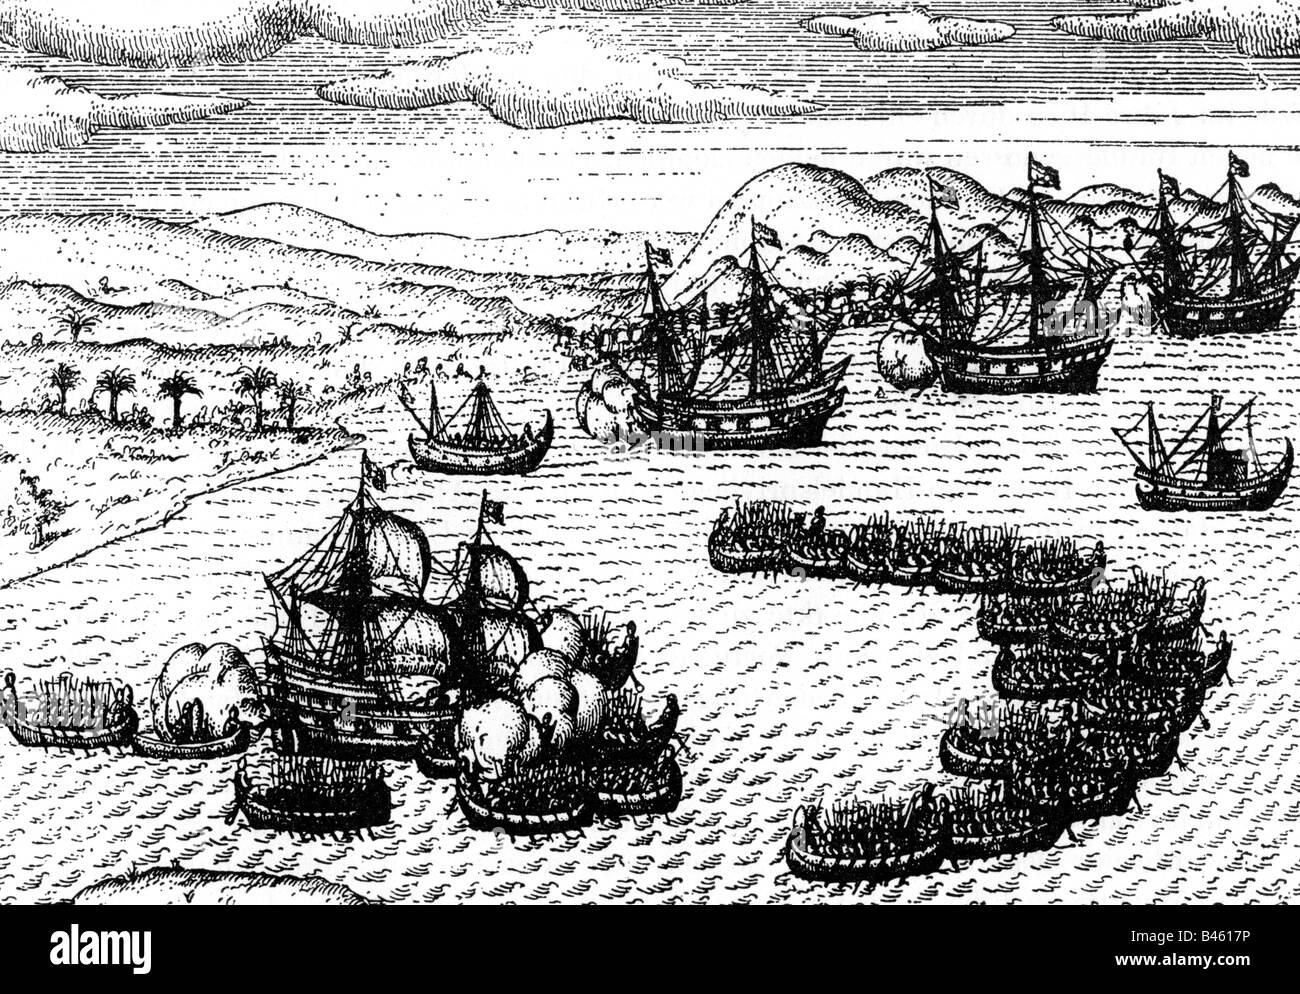 geography / travel, Indonesia, events, naval engagement against the Dutch, copper engraving, 17th century, battle, - Stock Image